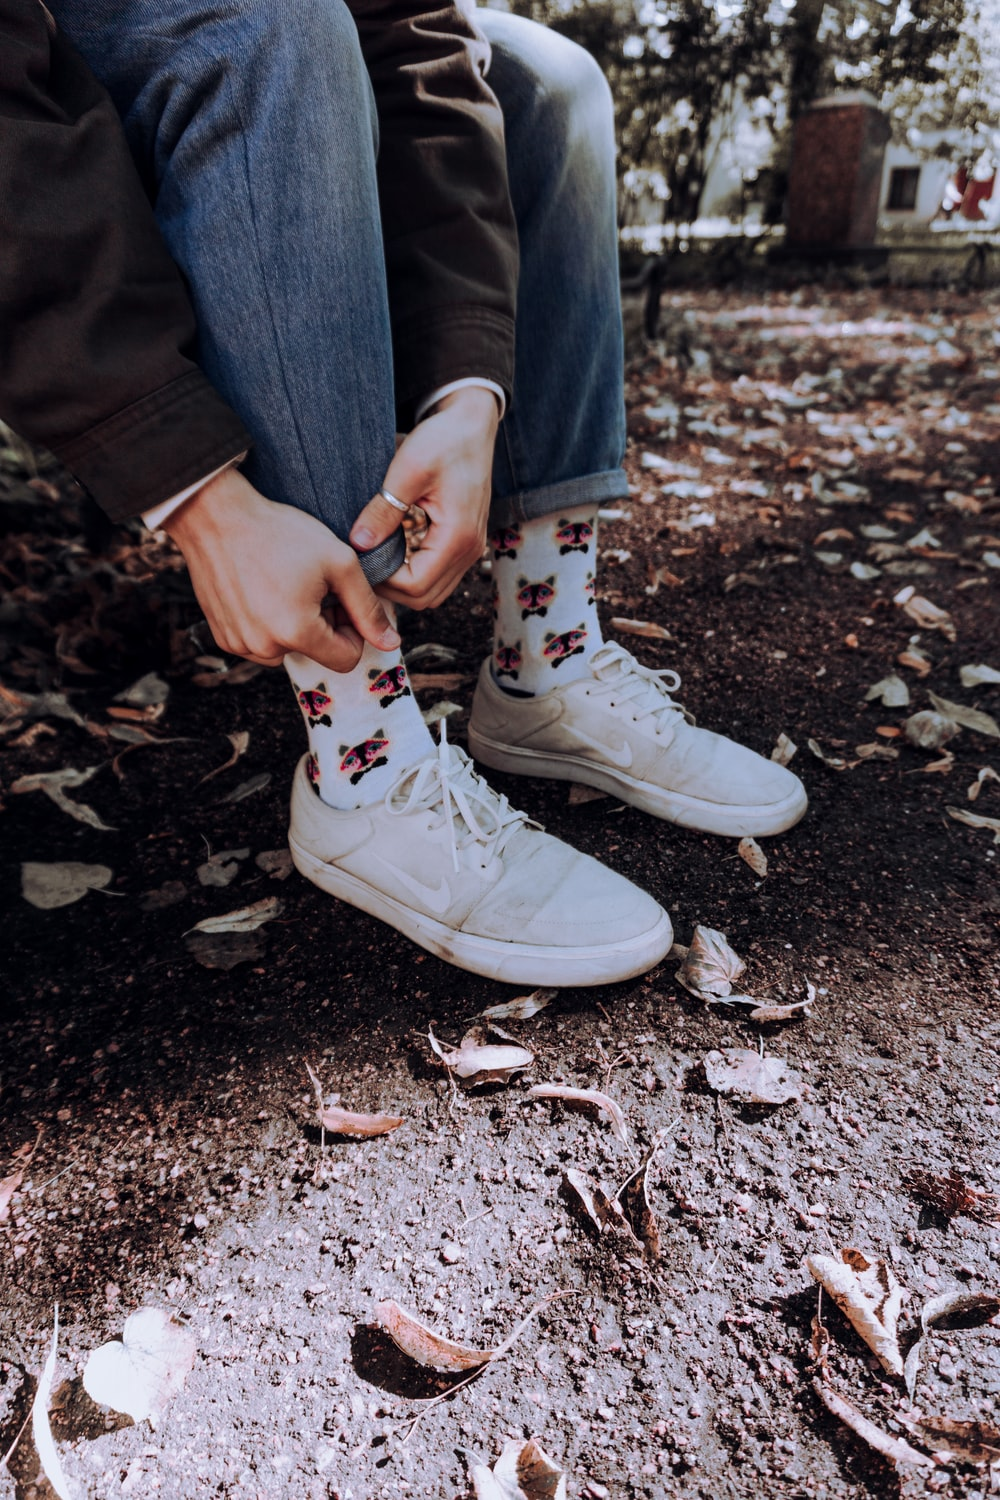 man in white sneakers